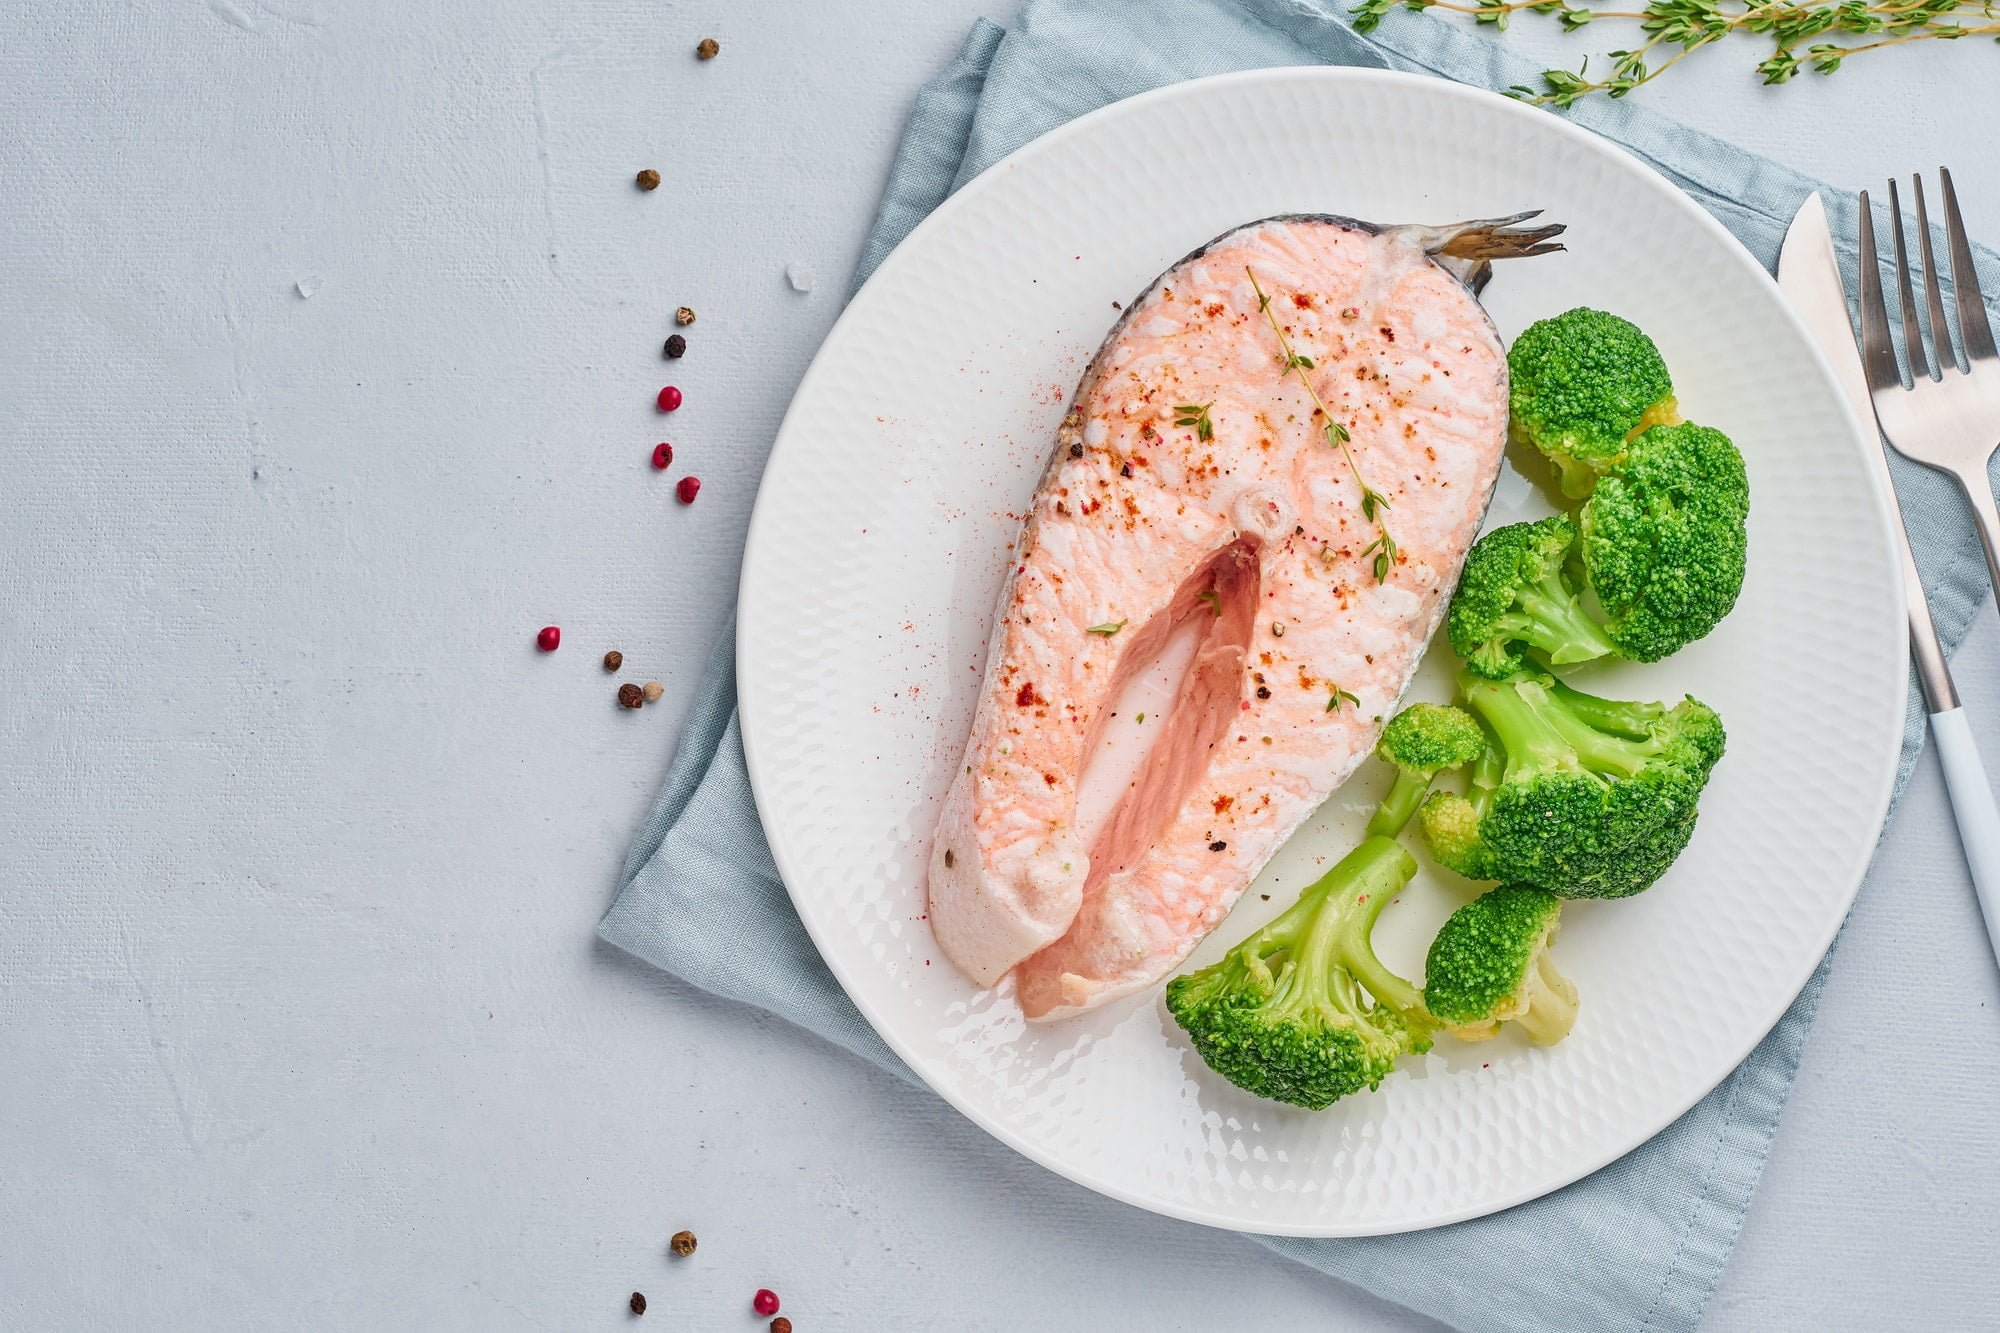 Steam salmon, broccoli, paleo, keto or fodmap diet. White plate on blue table, top view